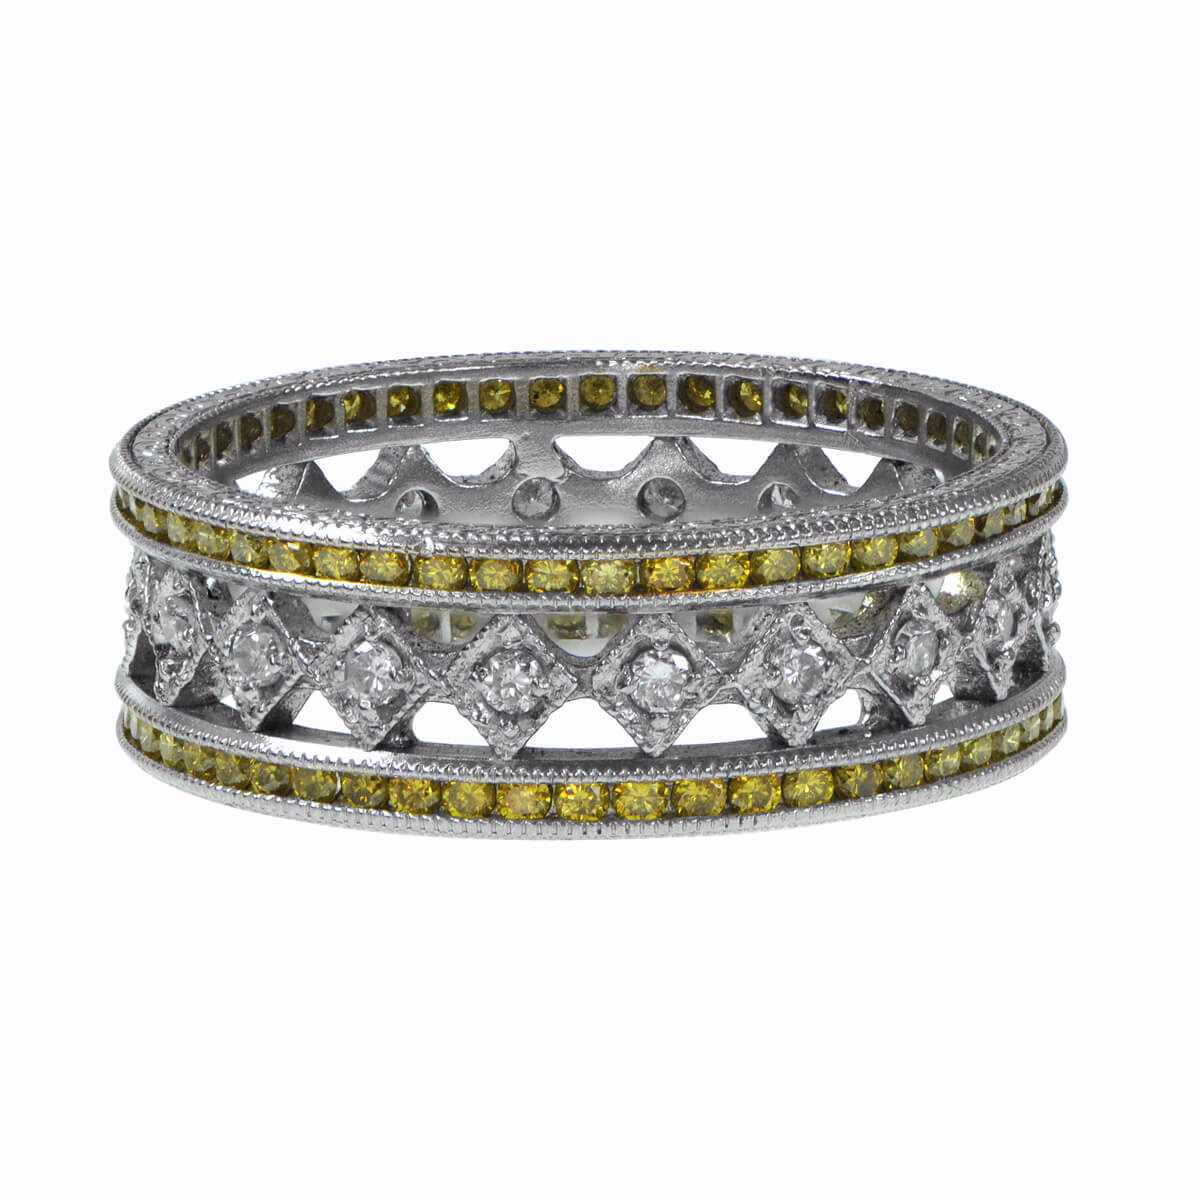 ctw wedding bands ct products band gold size in stone diamond jewellery vir jewels yellow white